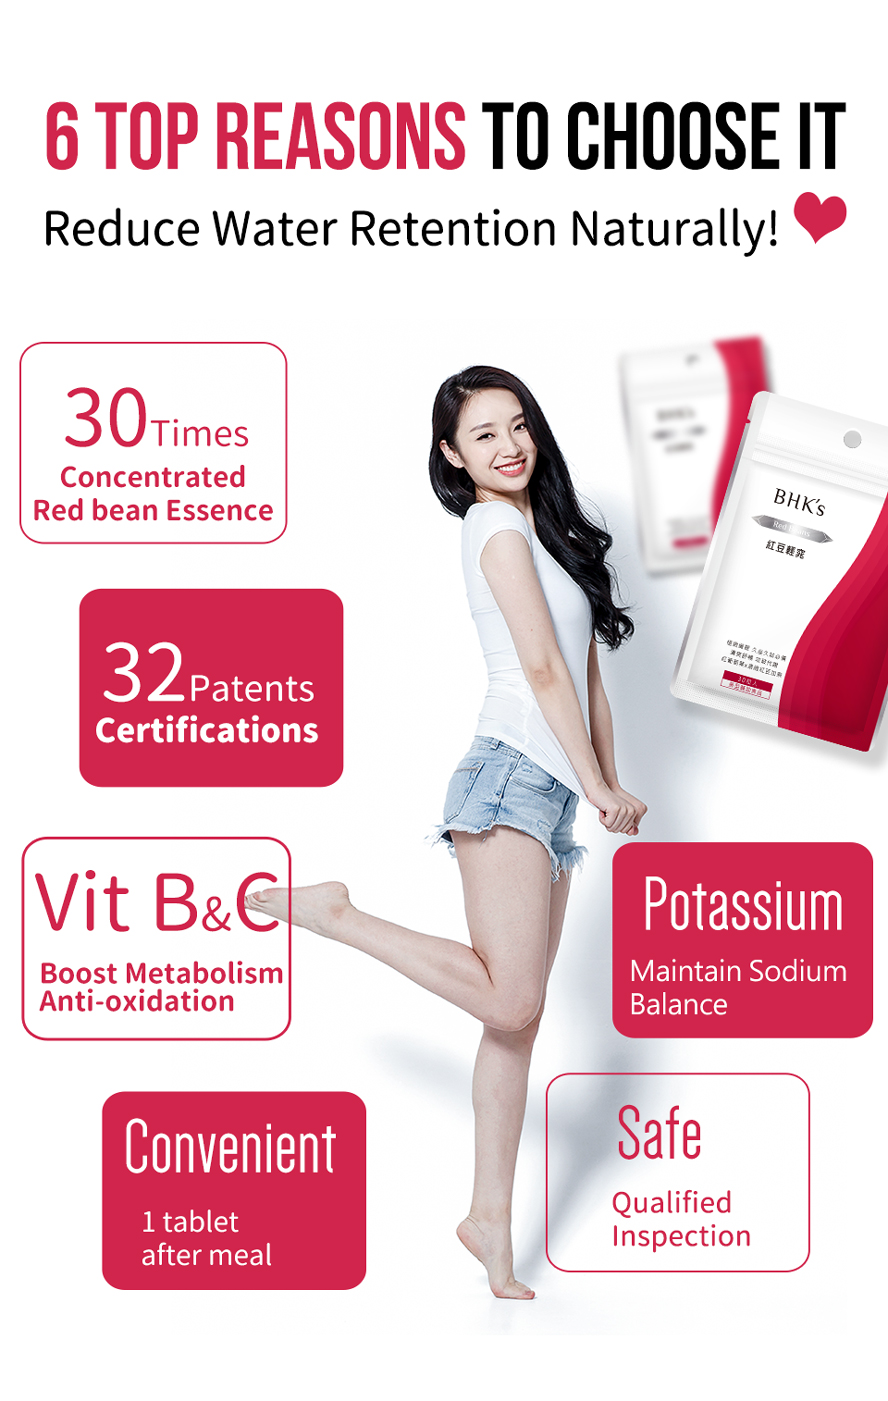 BHK's red bean could help eliminate body edema and firming body shape